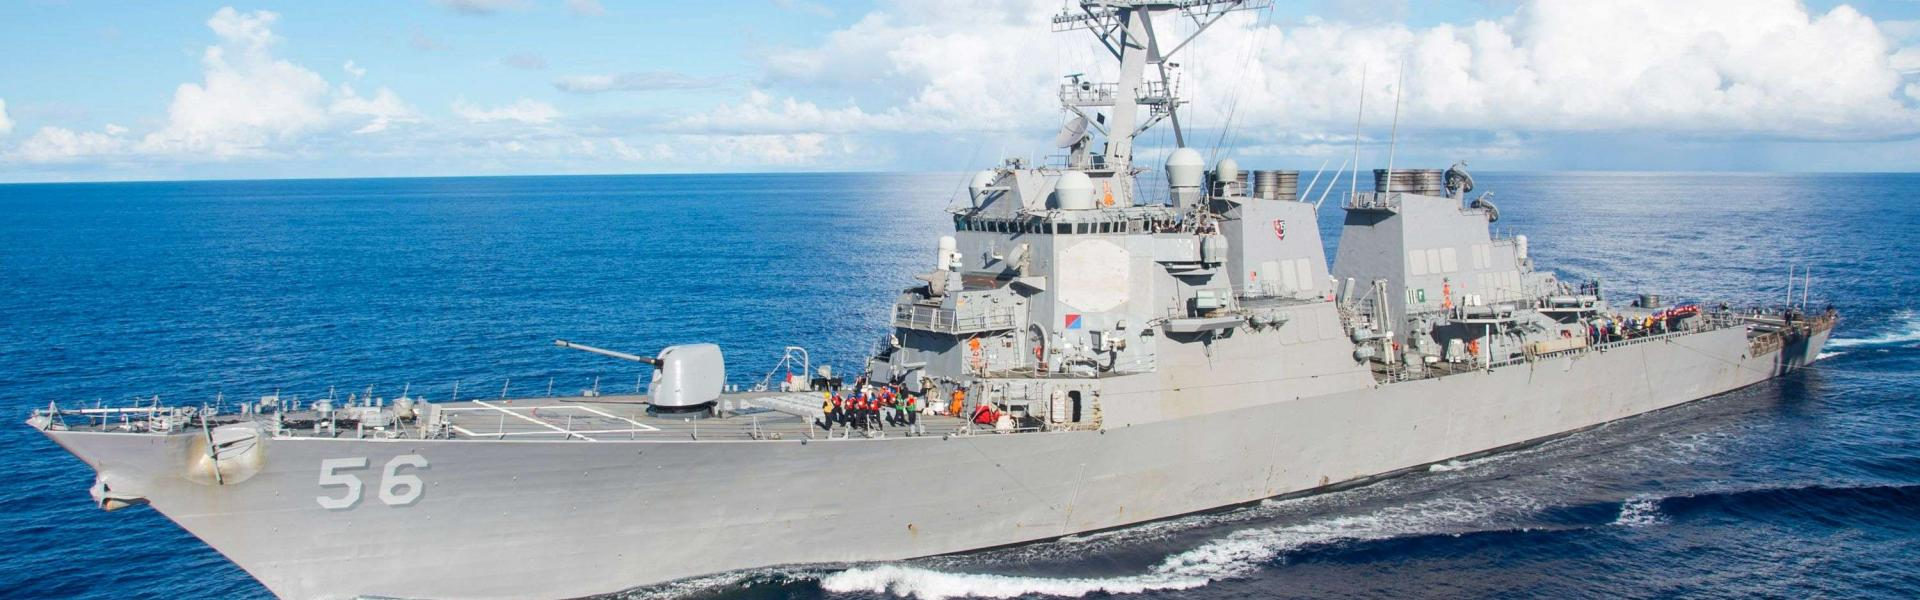 US Navy file photo taken on August 17, 2016 shows the Arleigh Burke-class guided-missile destroyer USS John S. McCain in the Pacific Ocean.